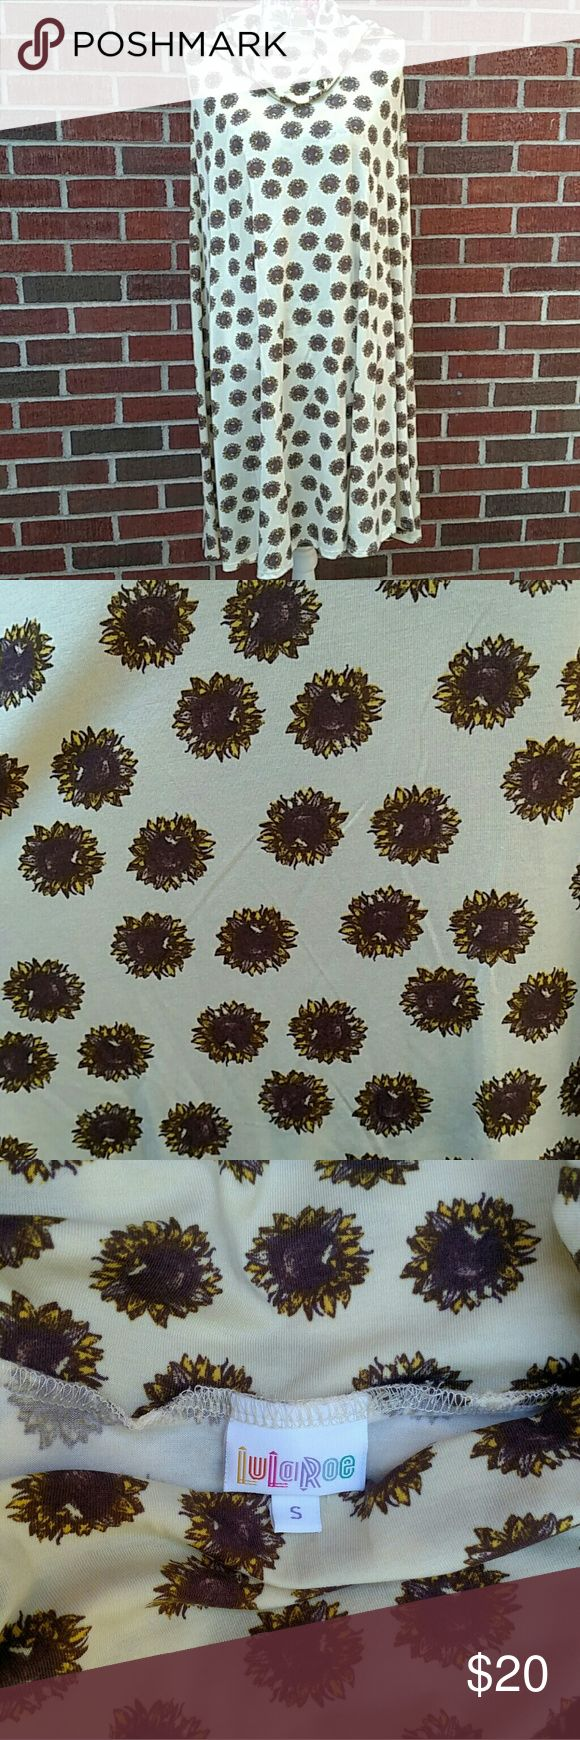 Lularoe Maxi Lularoe maxi in light yellow with sunflowers! New with out tags. LuLaRoe Skirts Maxi